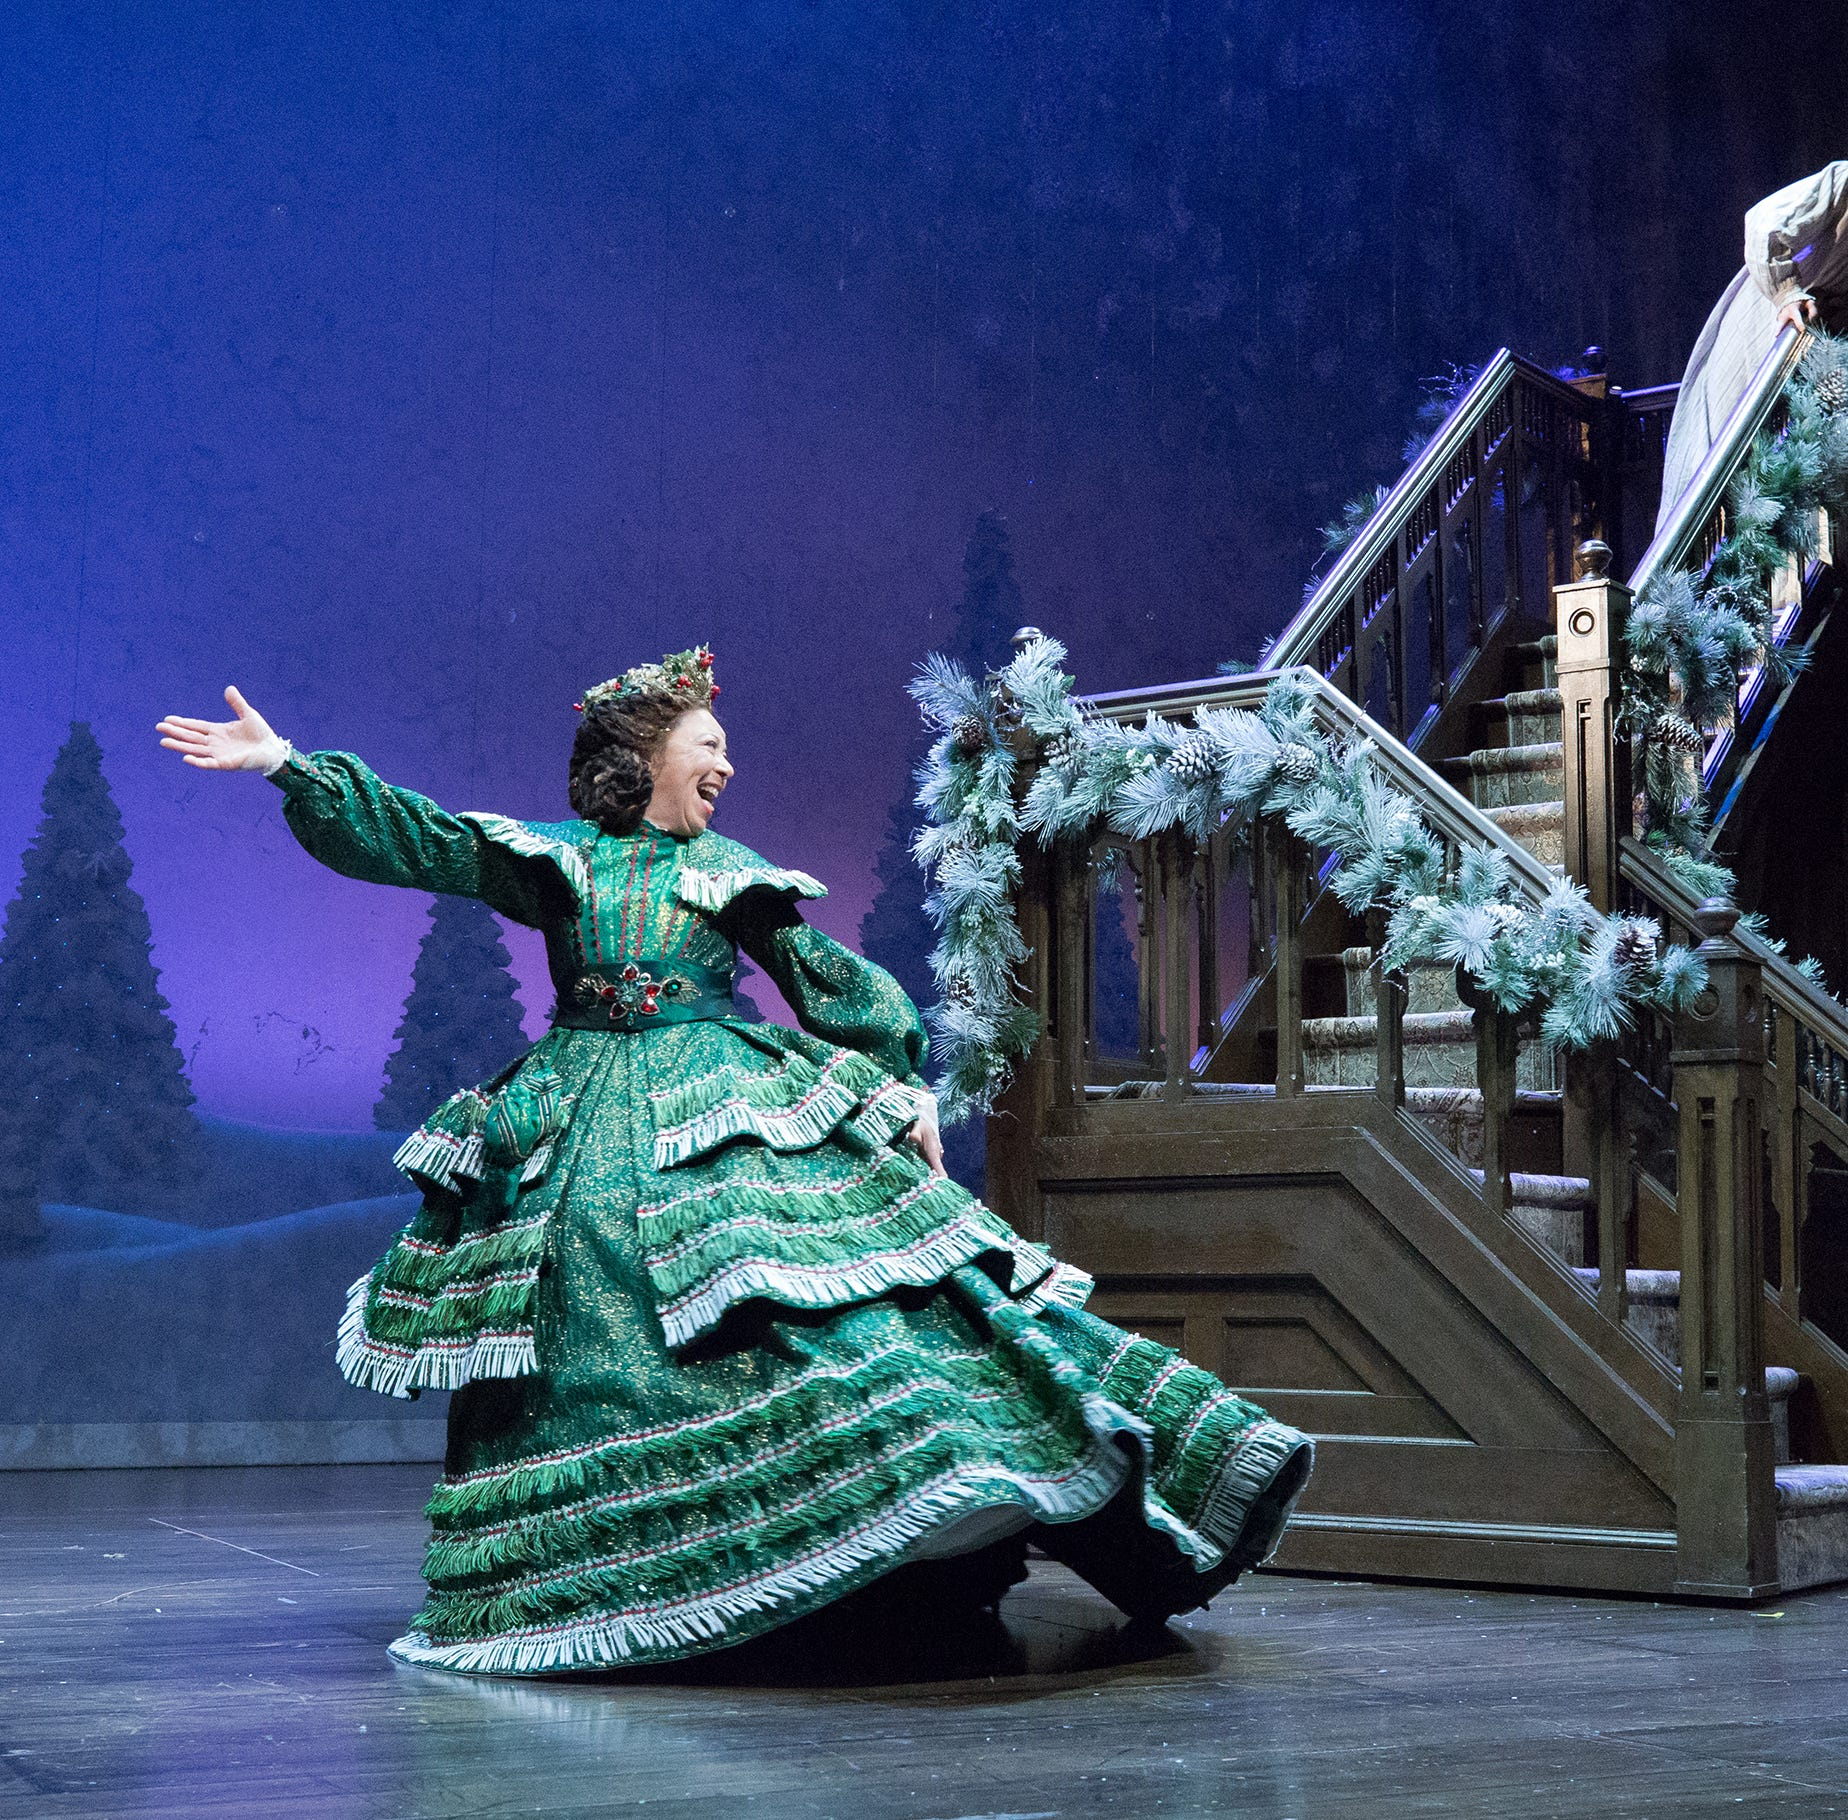 Somerset performer among leads in 'A Christmas Carol' at McCarter Theatre